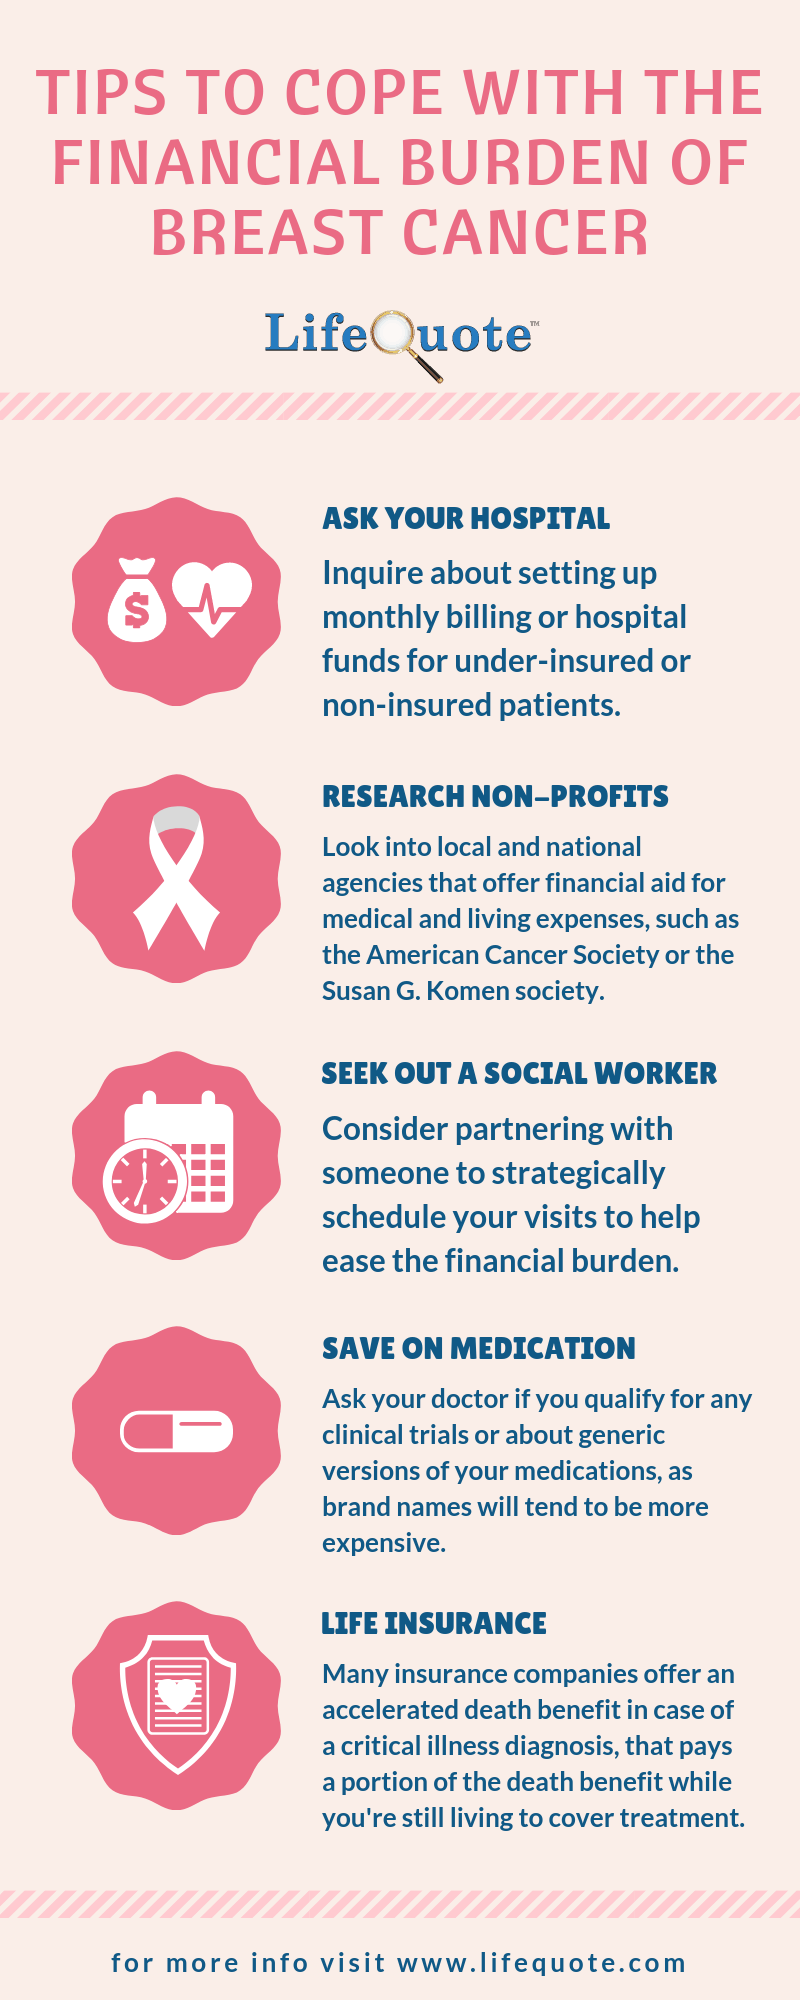 tips to cope with the cost of breast cancer treatment